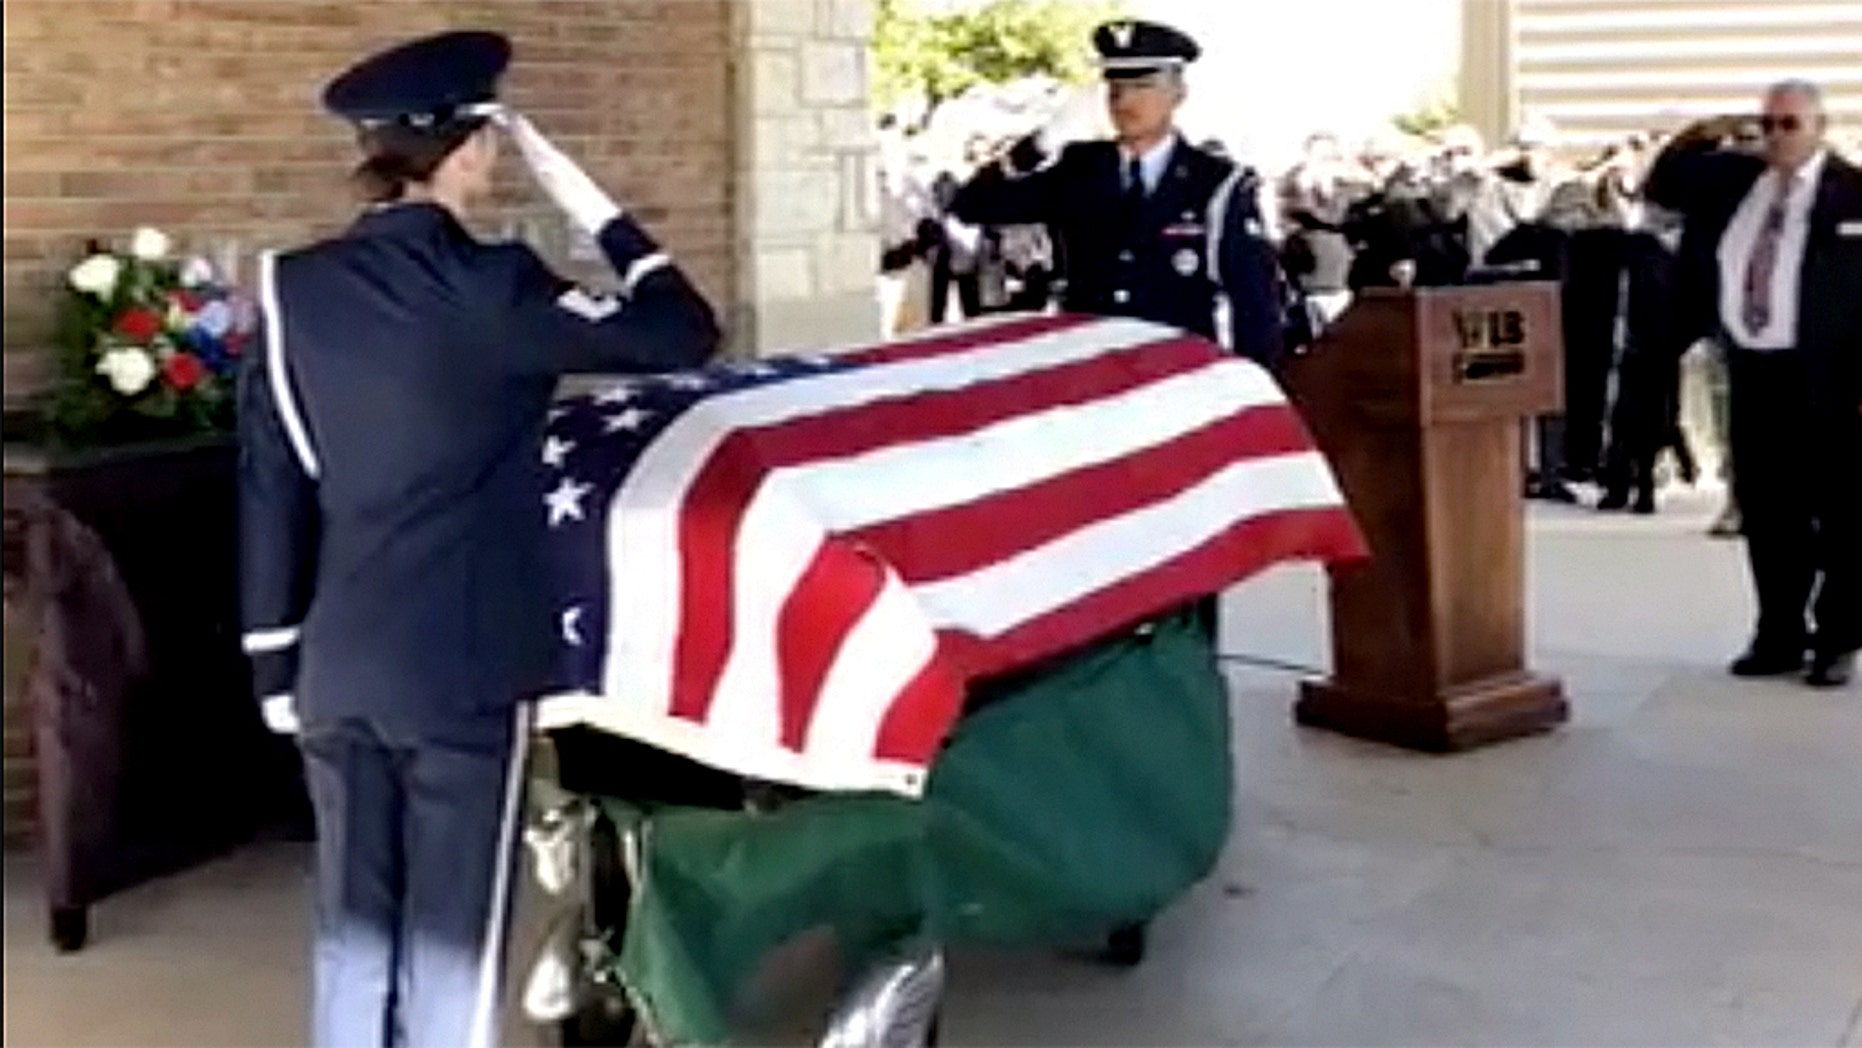 The funeral for Air Force veteran Joseph Walker in Texas Monday drew thousands of people who responded to an appeal for mourners.